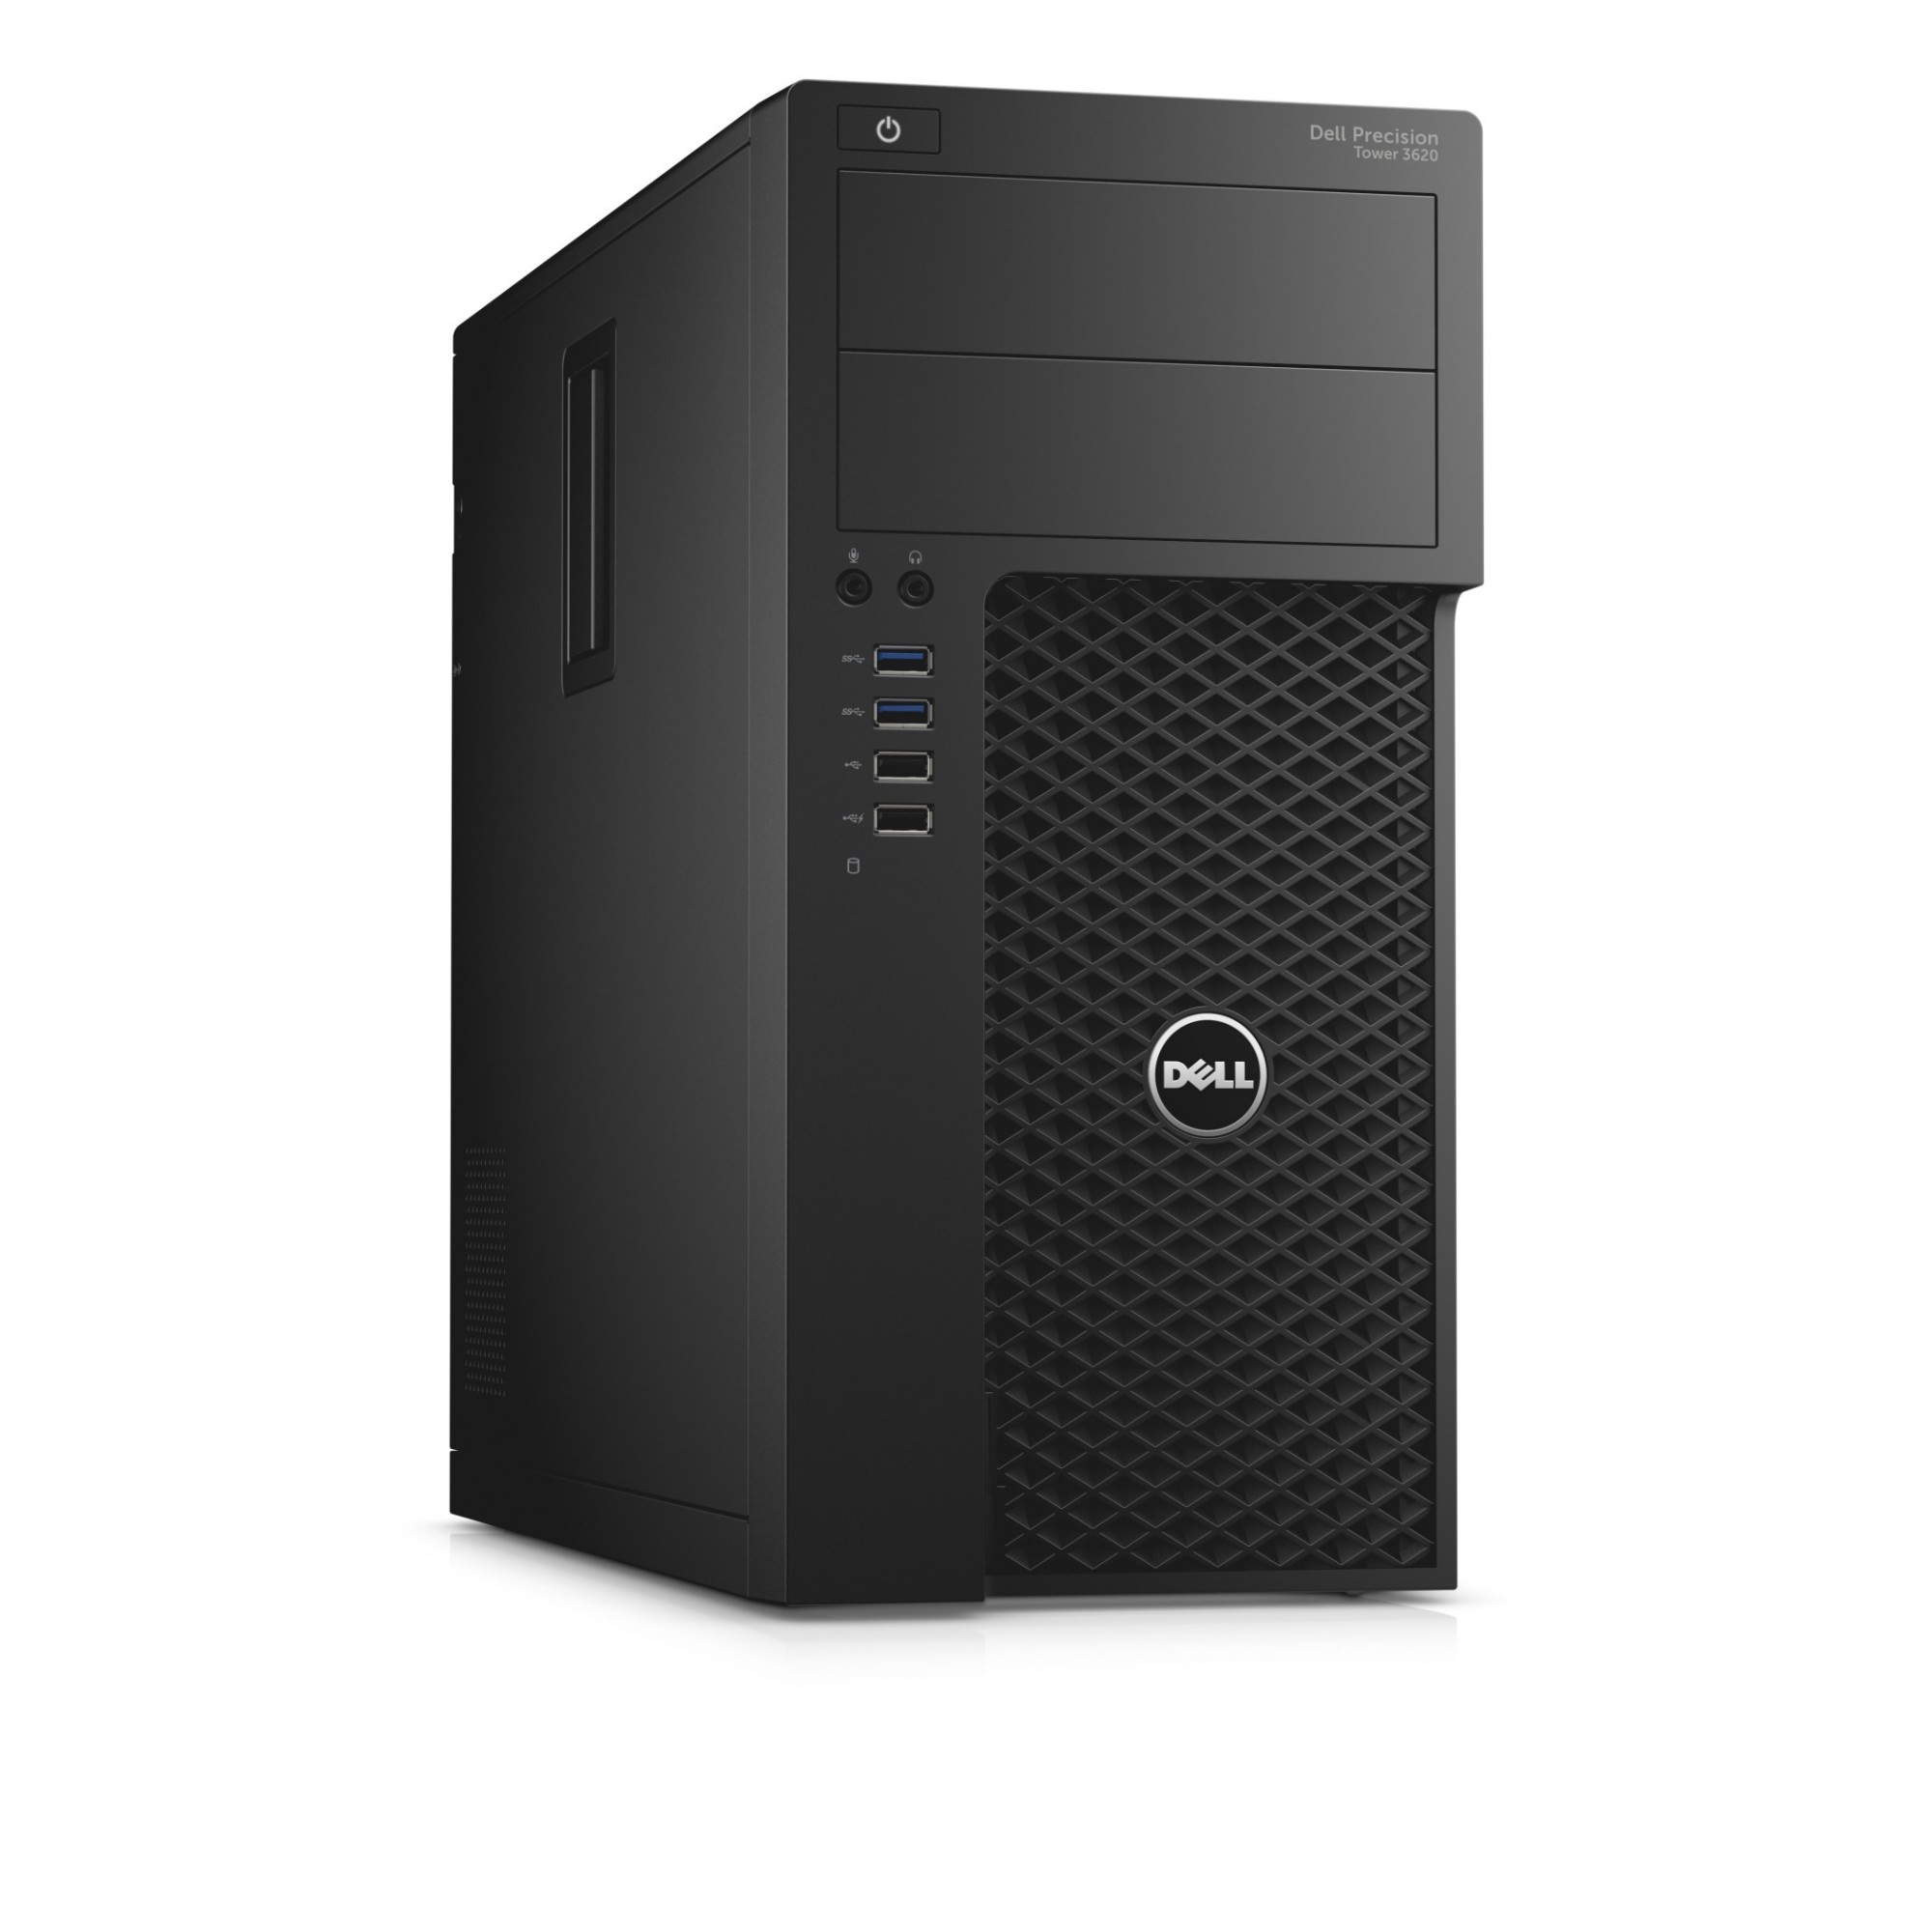 DELL Precision T3620 3.4GHz i7-6700 Mini Tower Black Workstation